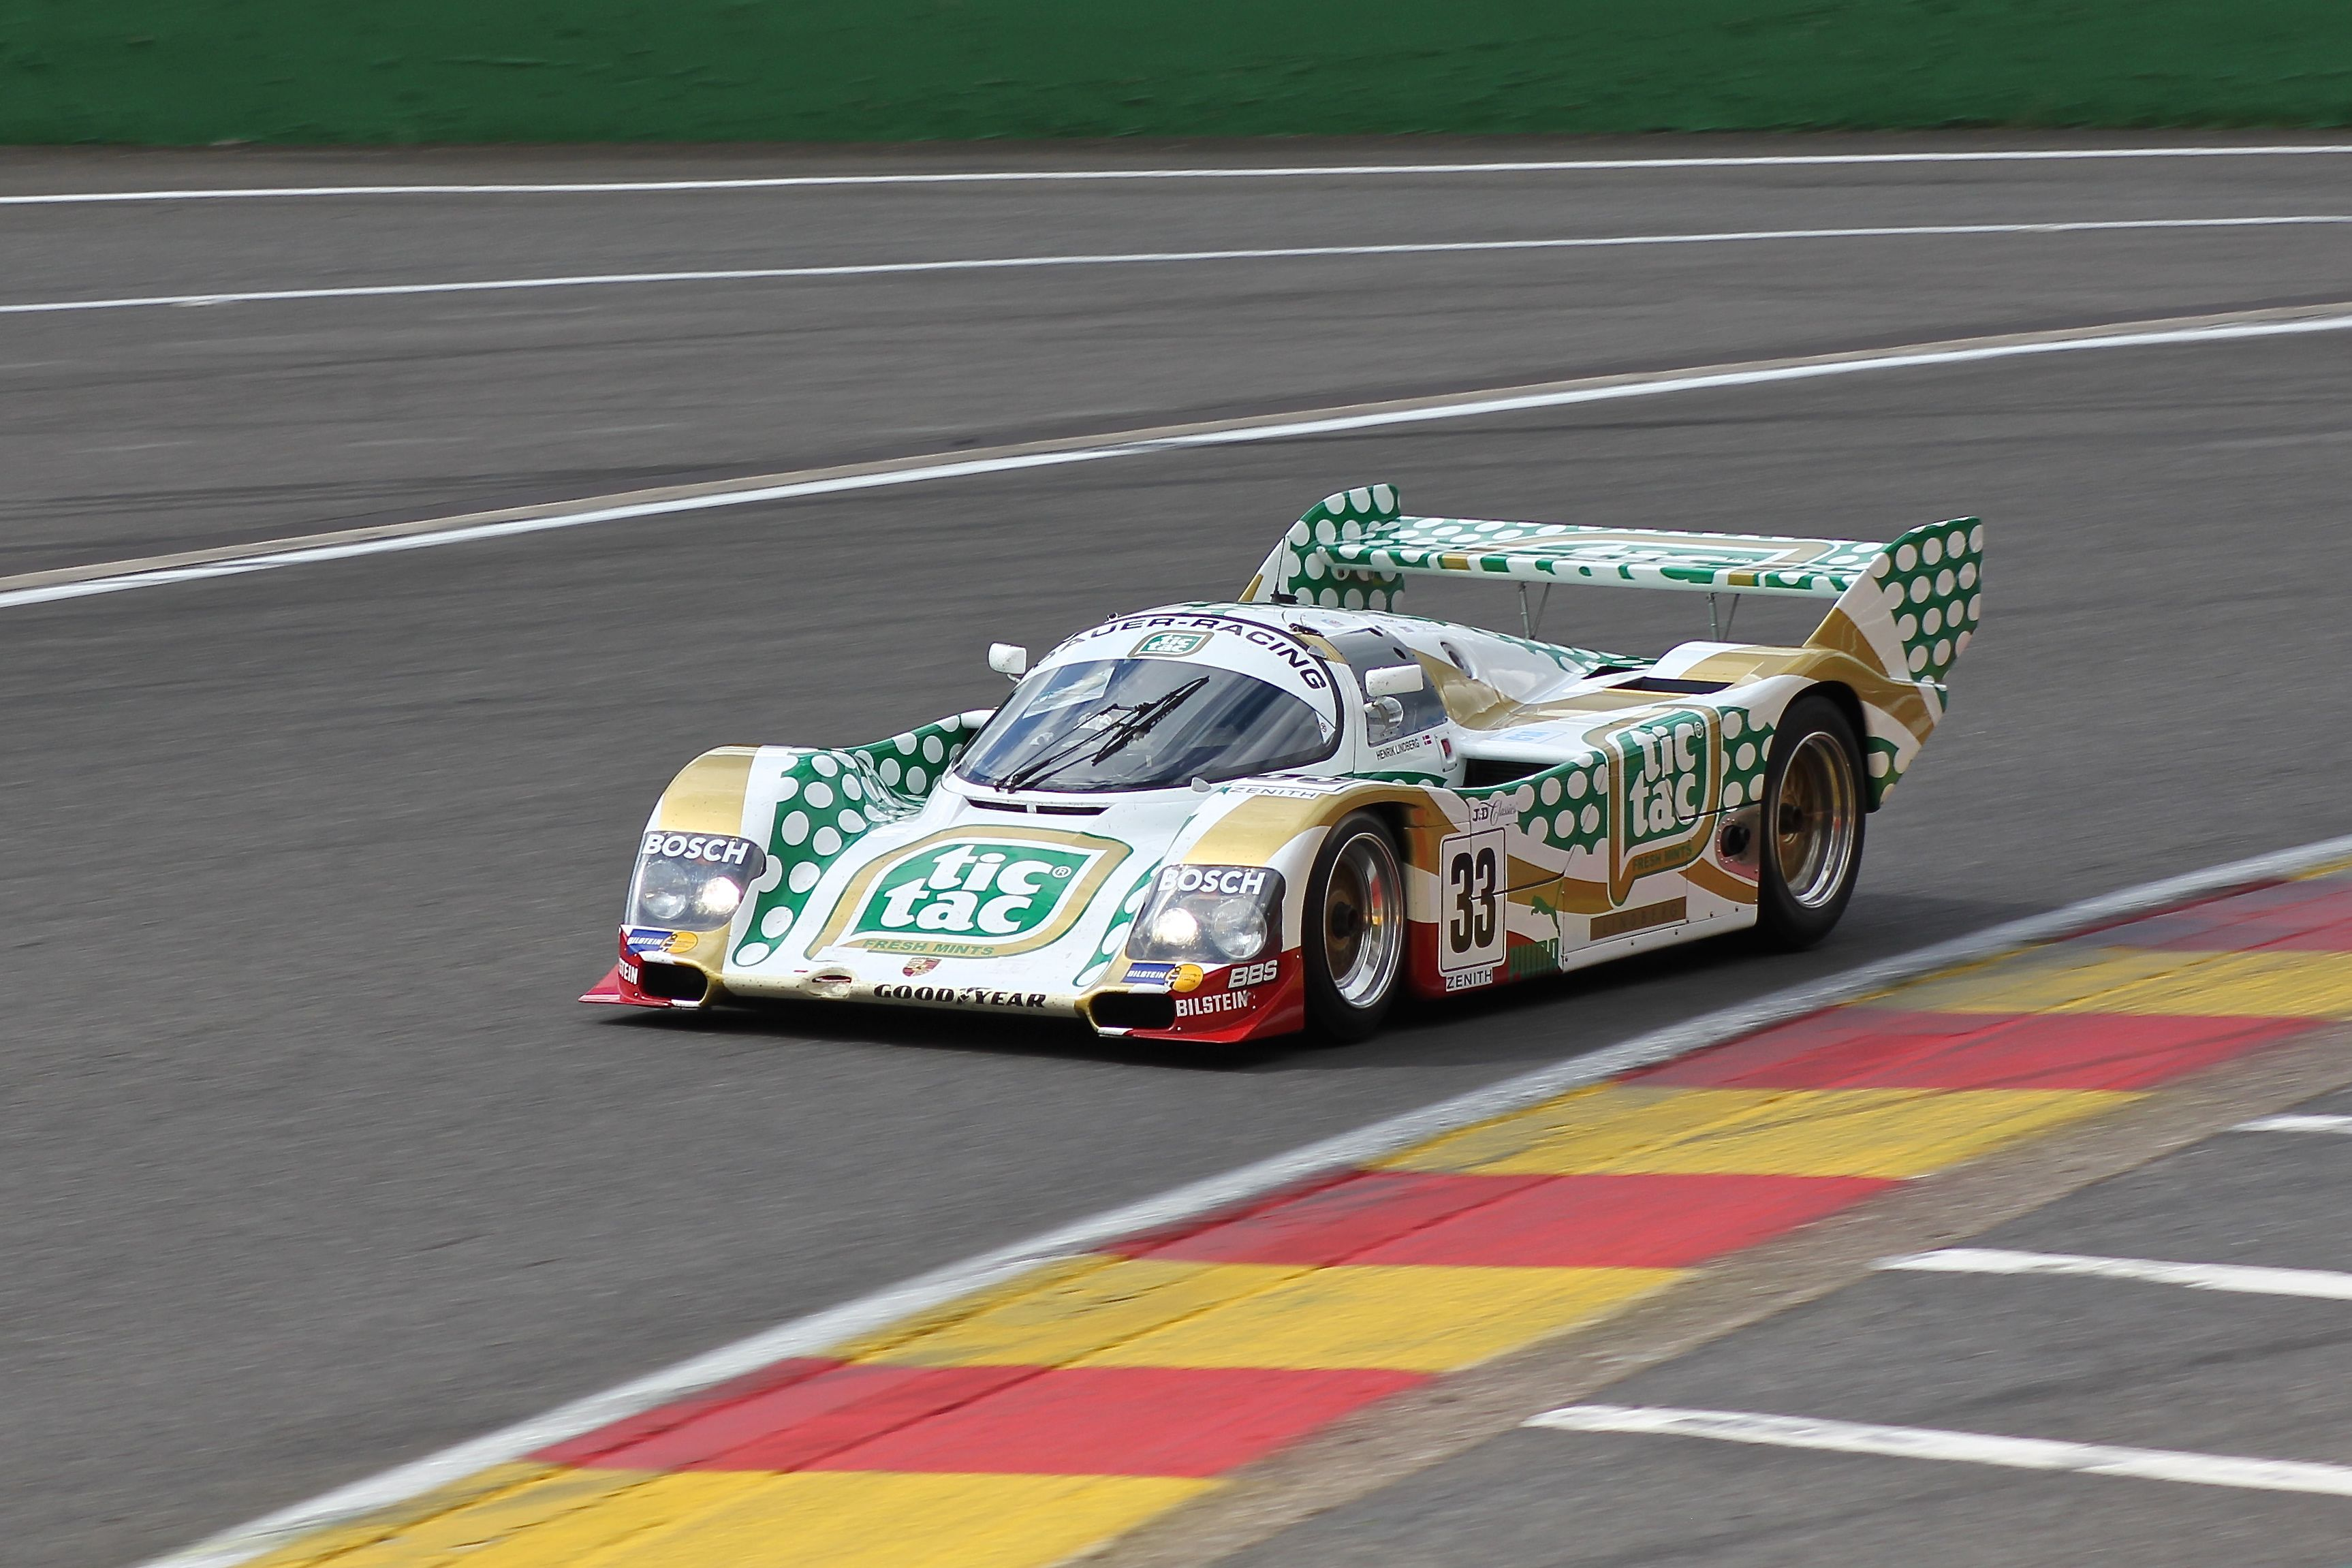 Porsche 962 - 1989 - Spa Classic 2017 - photo Ludo Ferrari